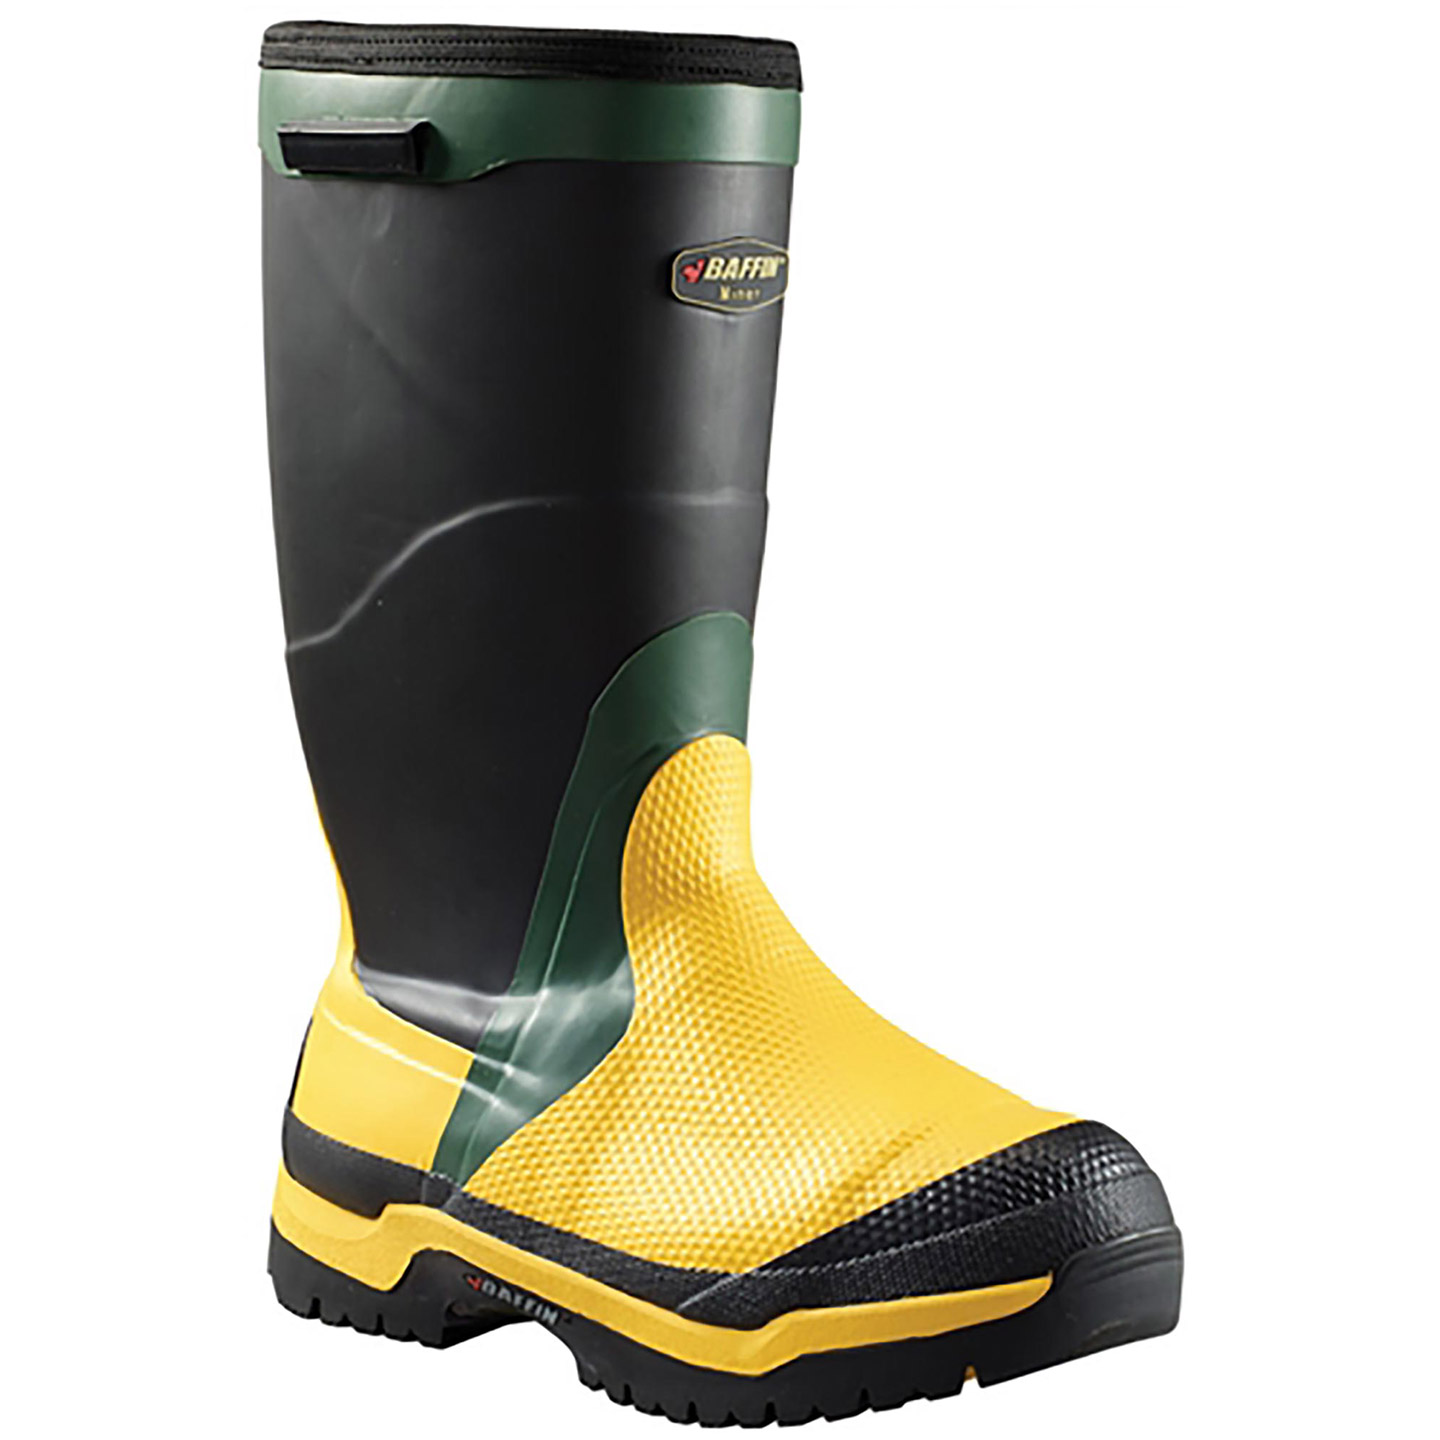 8e4ddf69991 Baffin Miner CSA-Approved 16 inch Steel Toe Internal Met Guard  Puncture-Resistant Waterproof Insulated Work Boot